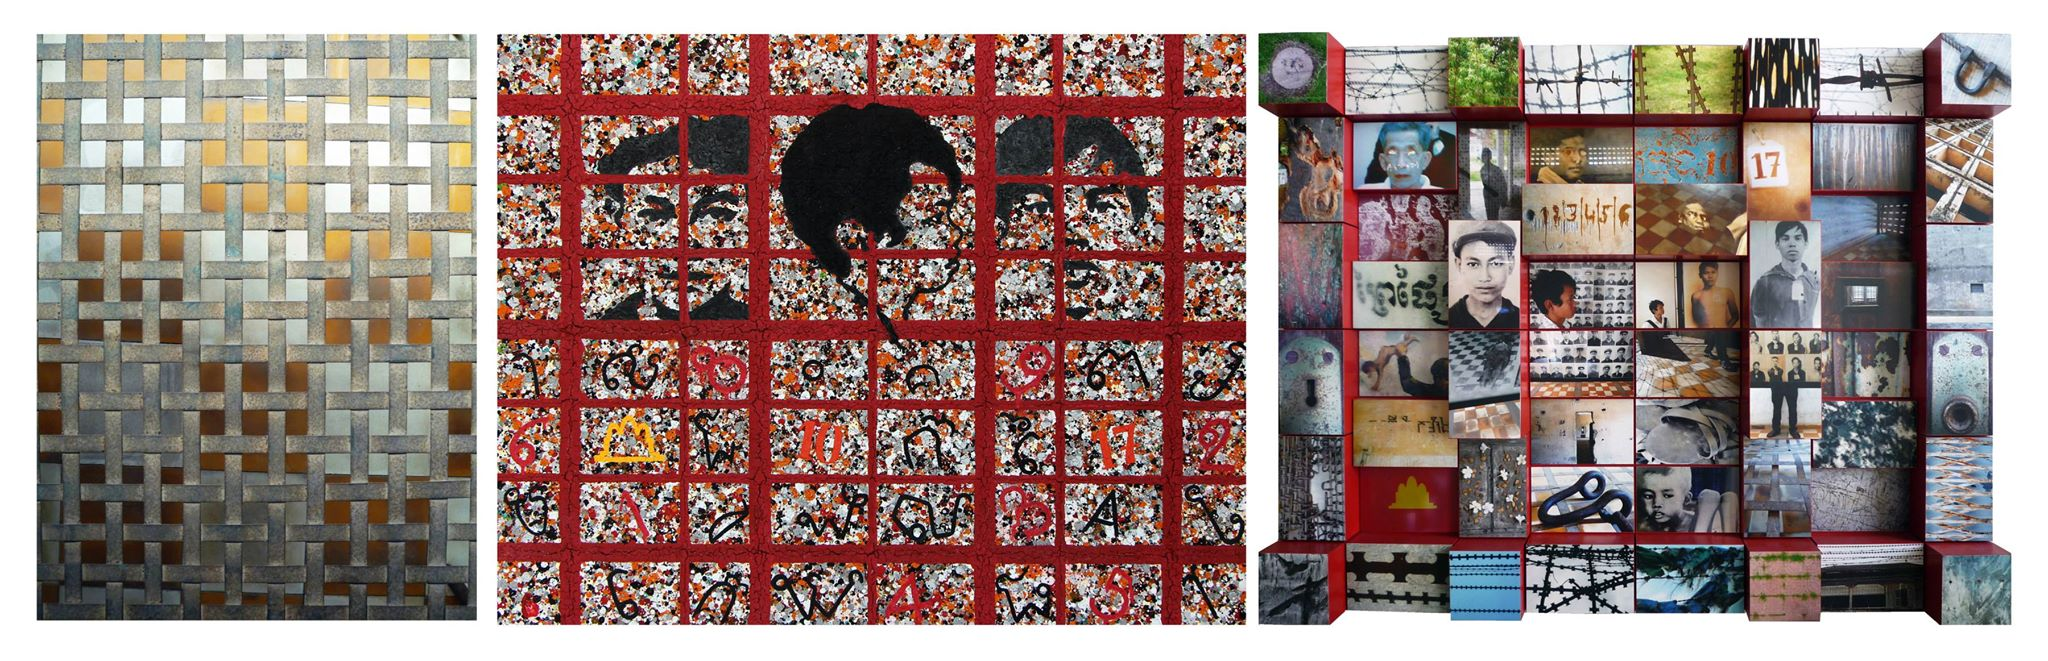 Tuol Sleng Museum: Triptych